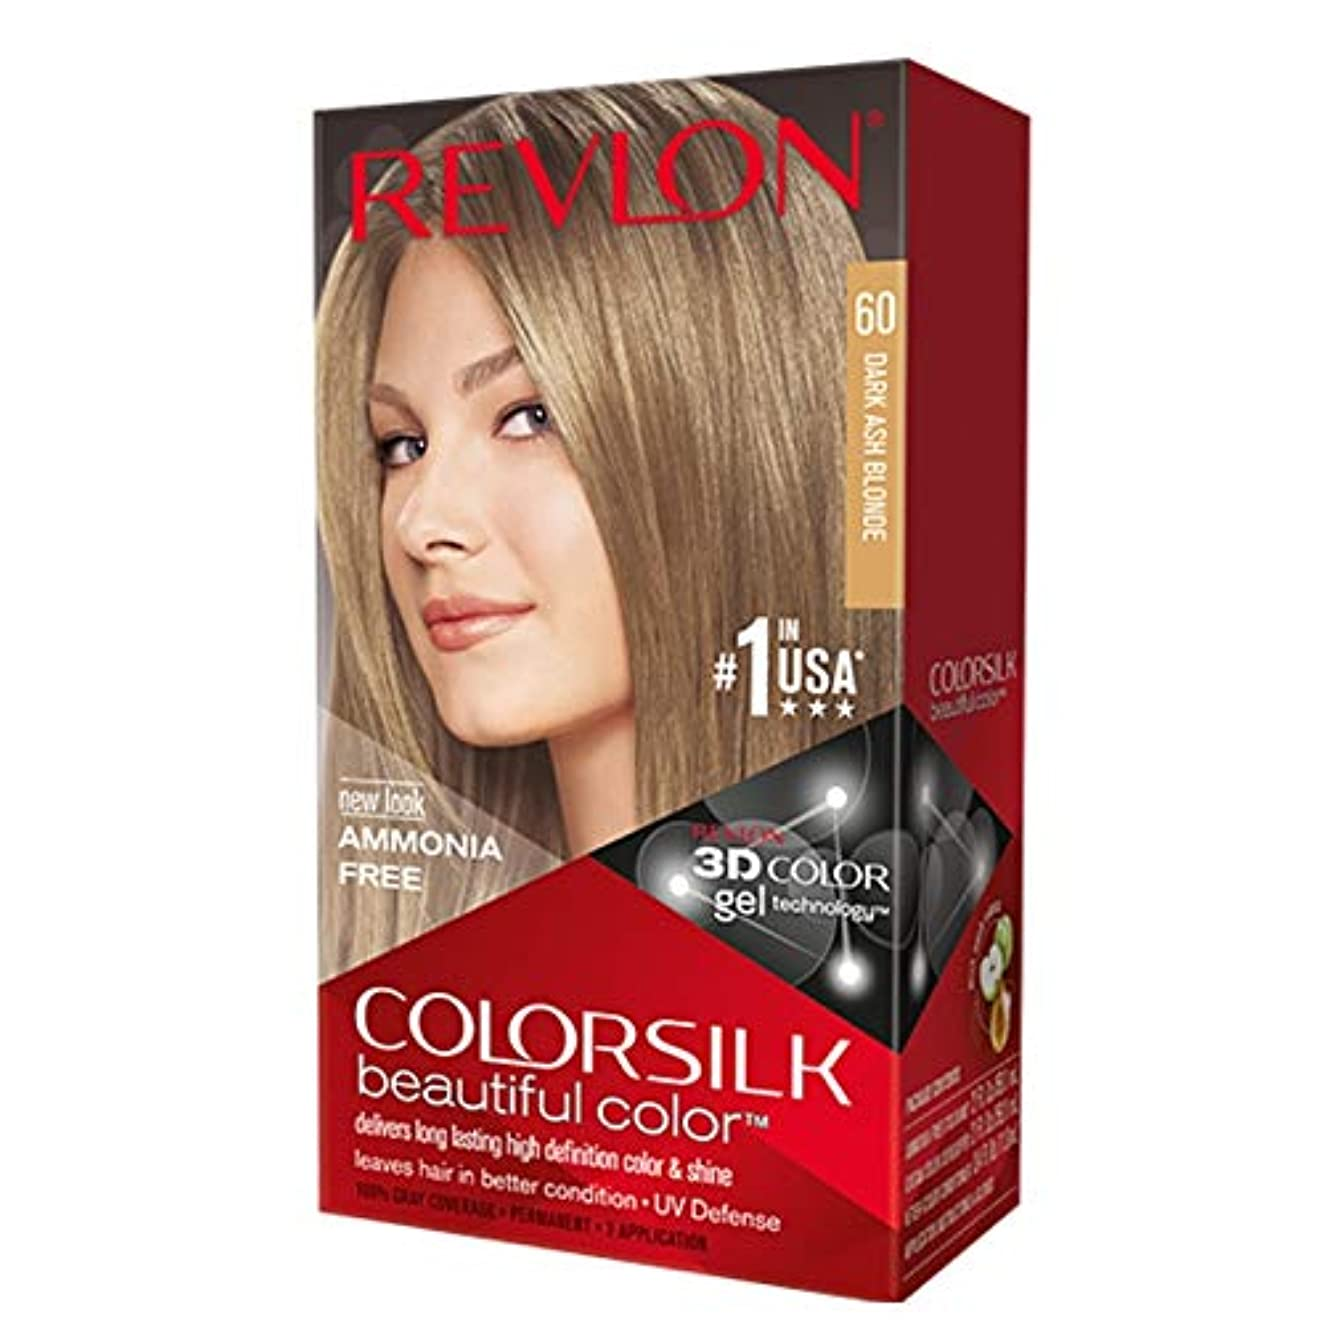 抜粋瞑想するバインド海外直送肘 Revlon Colorsilk Natural Hair Color 6A Dark Ash Blonde, 6A Dark Ash Blonde each